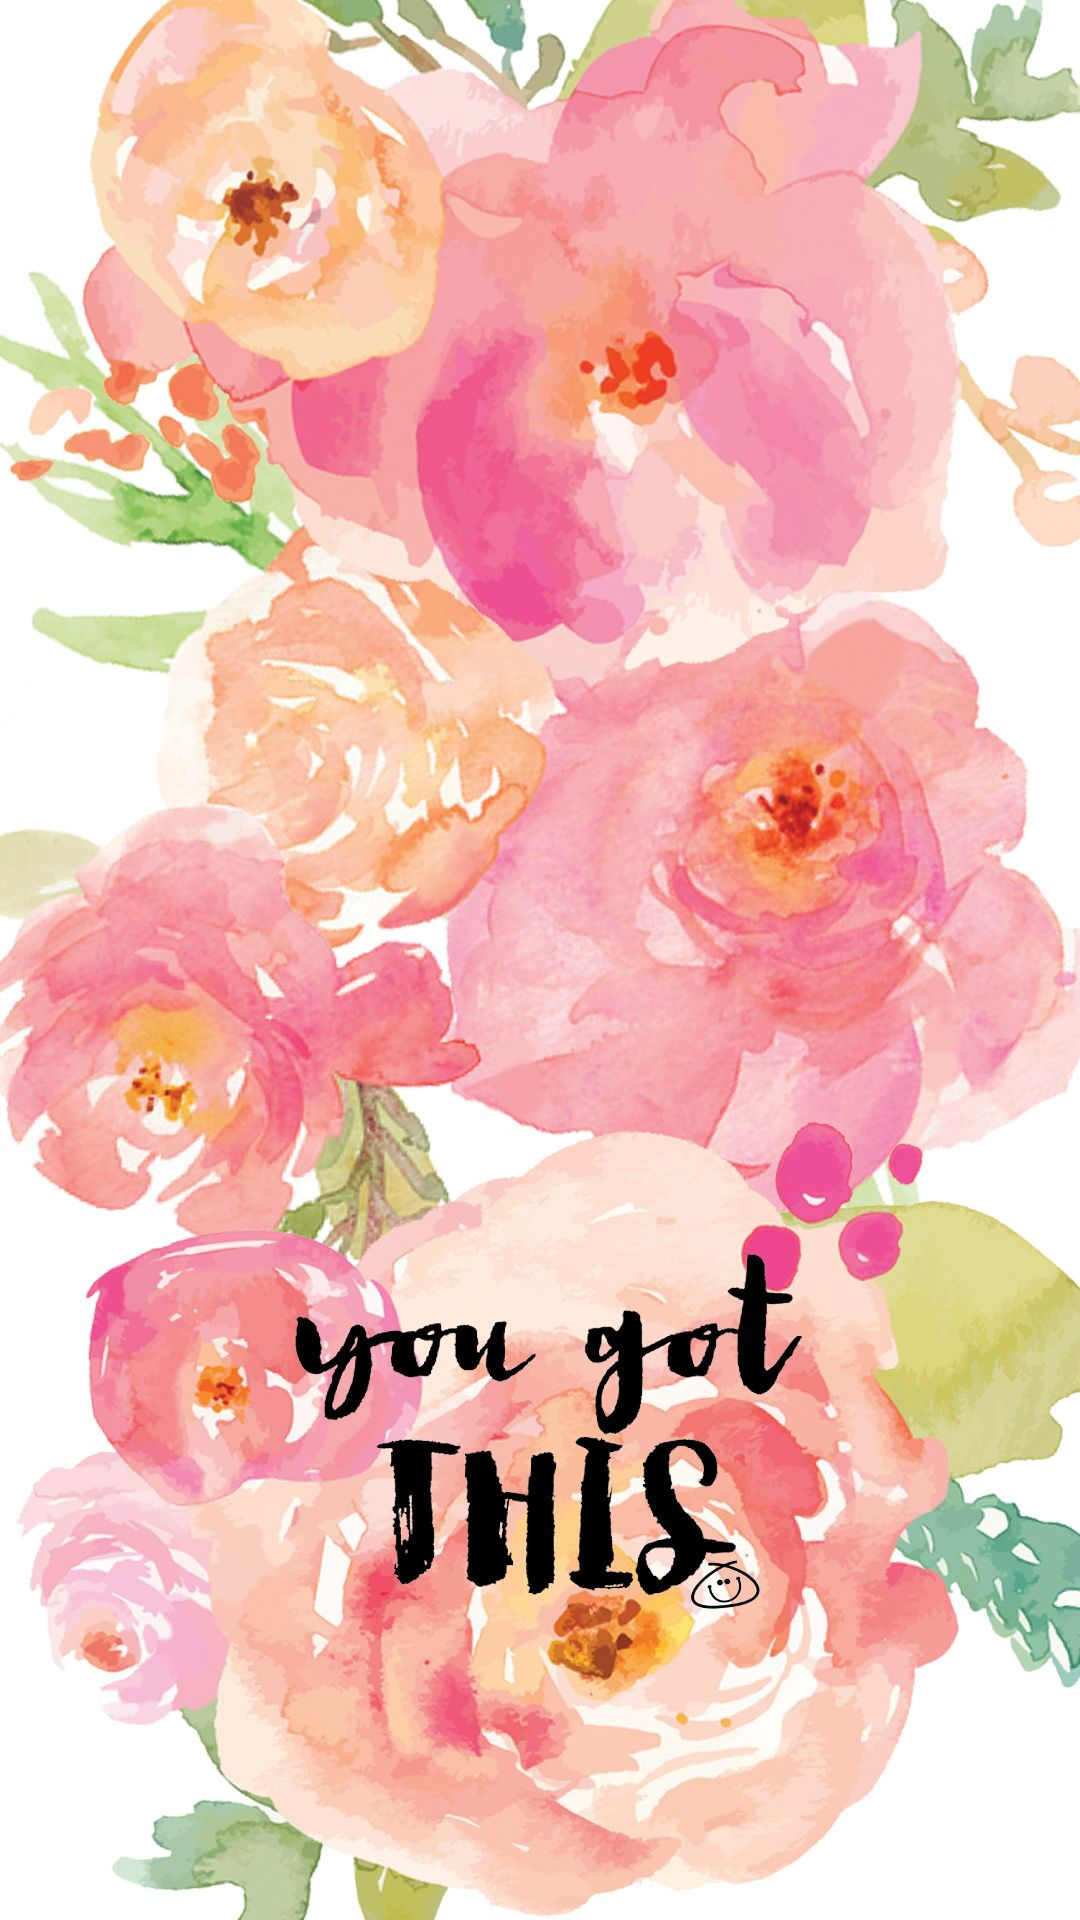 Happiness Practices On January 17th Flower Quotes Wallpaper Quotes Wallpaper Backgrounds